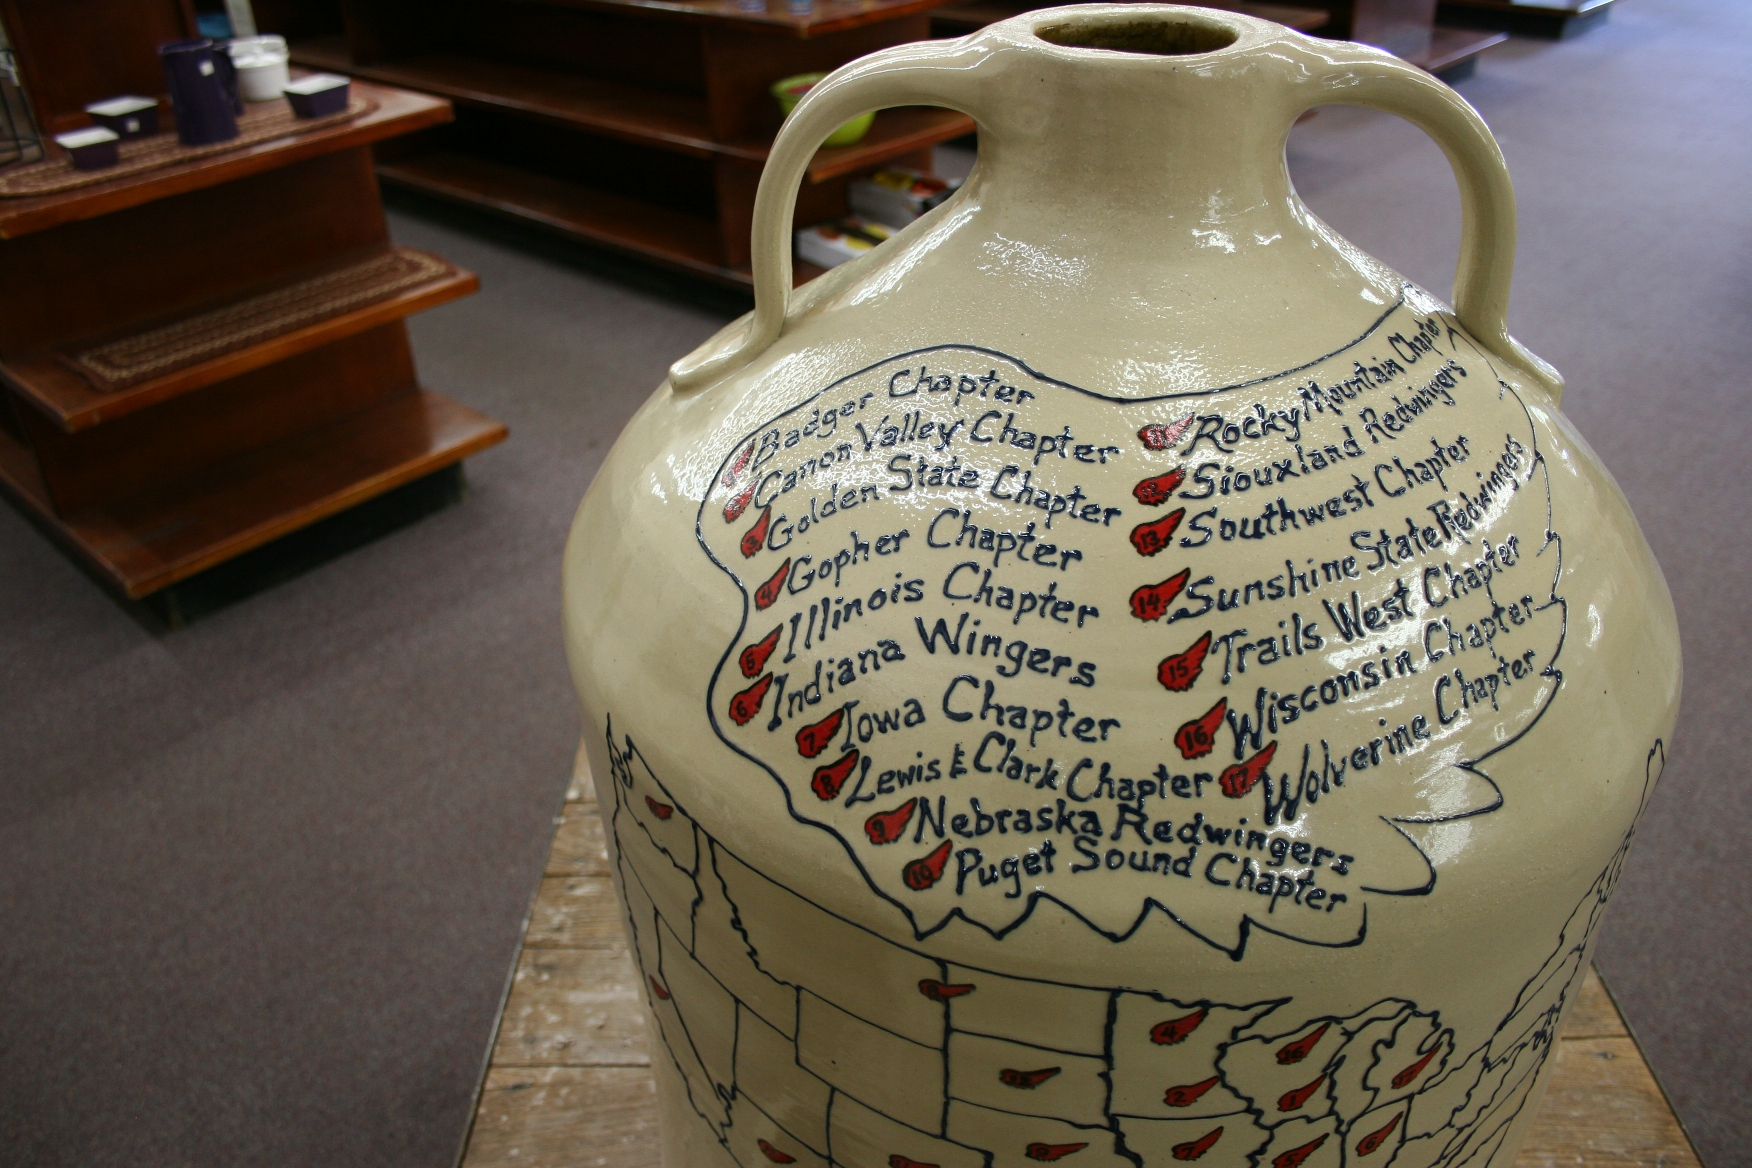 A photographic farewell to the red wing pottery salesroom a large jug inside the pottery store lists chapters of the red wing collectors society reviewsmspy